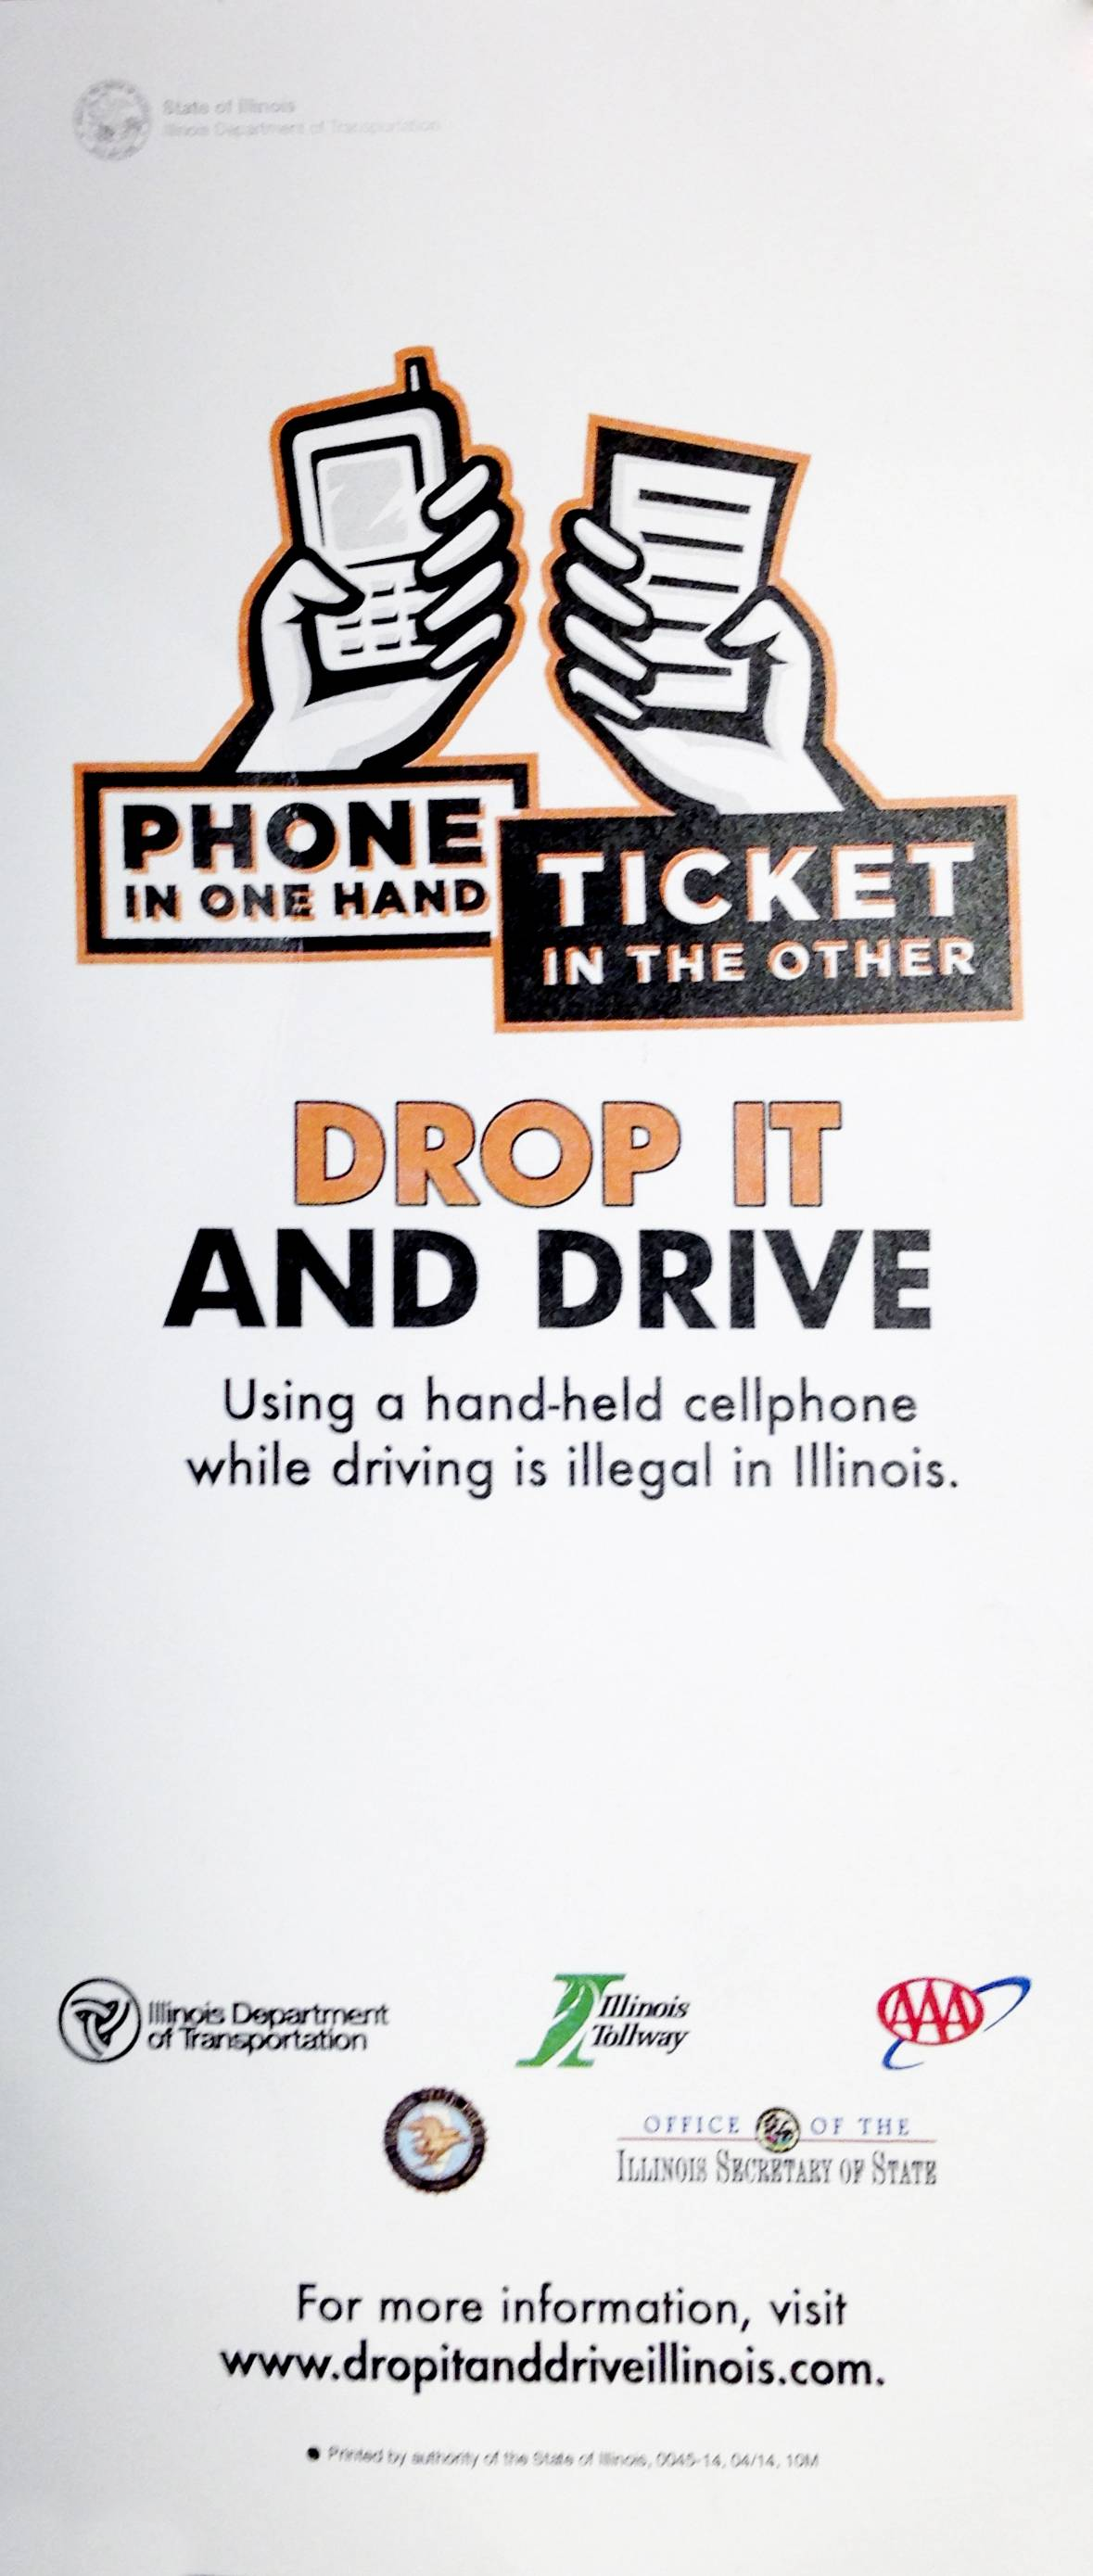 A card handed out by the Lombard Police Department gives drivers information about the Drop It and Drive campaign.